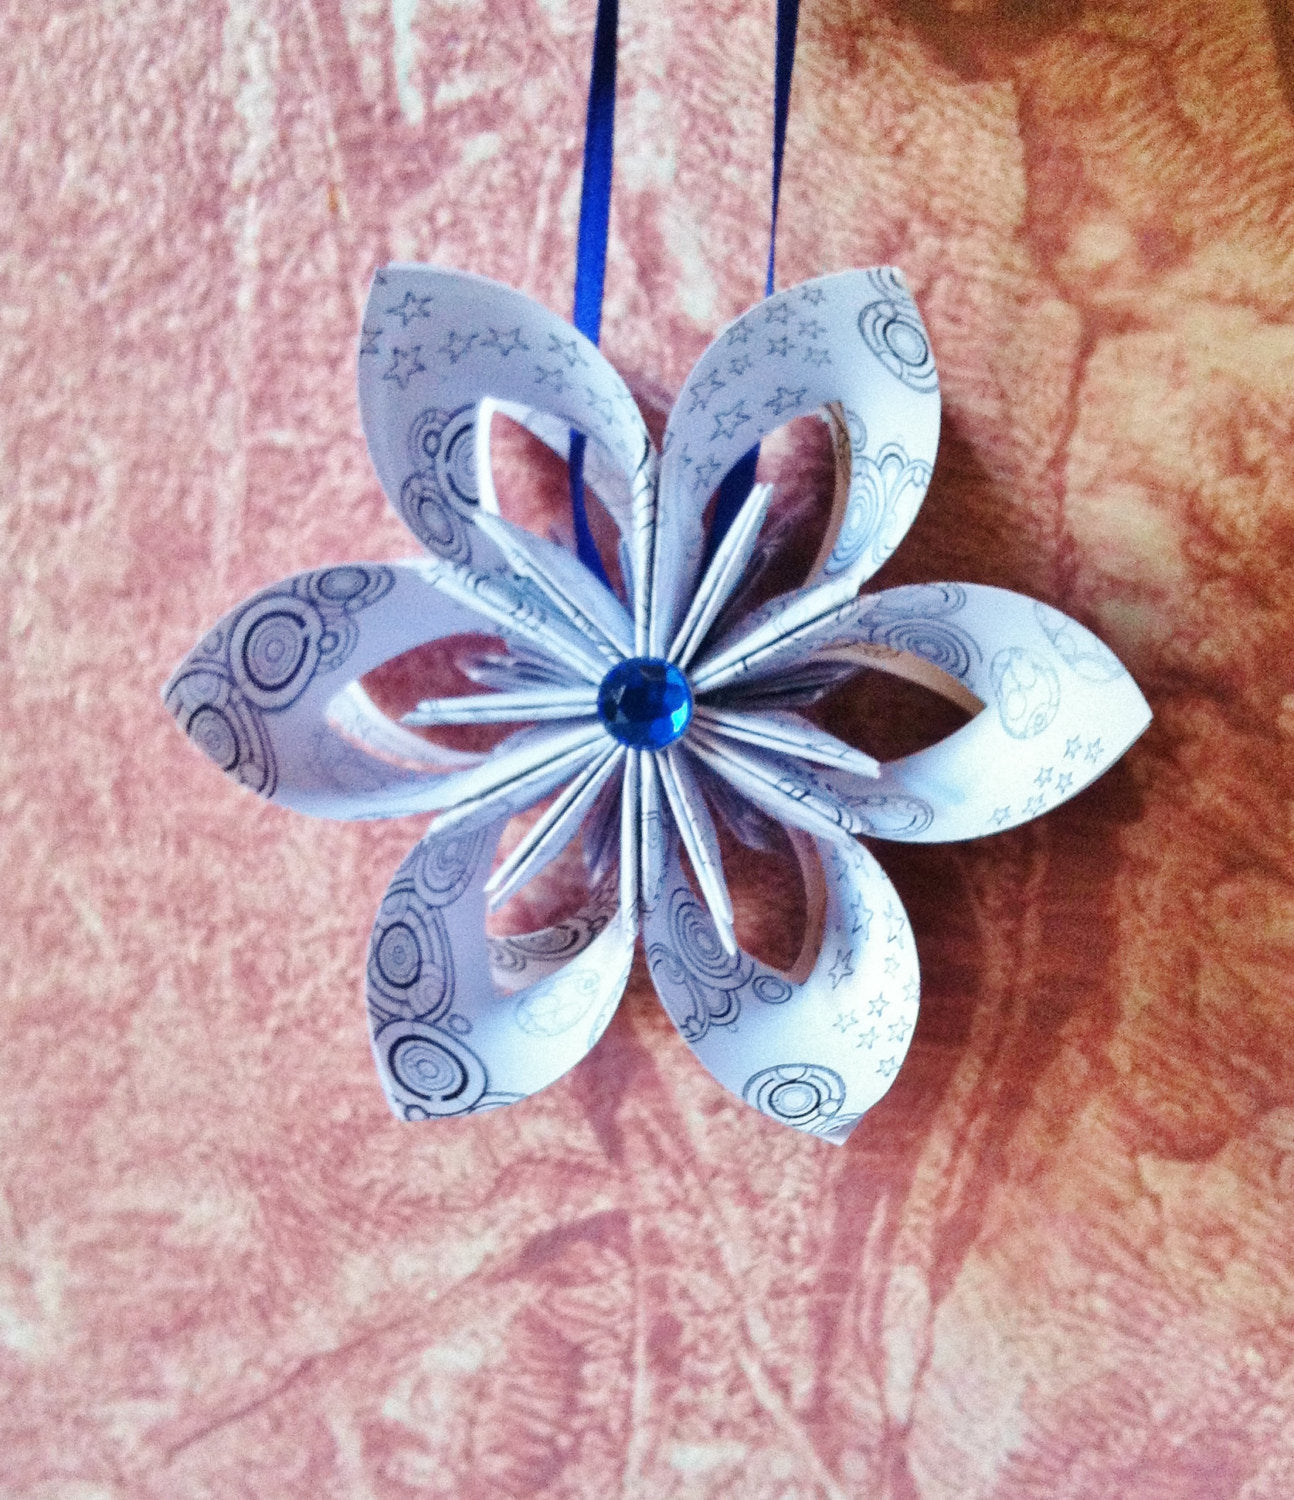 Doctor Who Ornament- Gallifreyan Falling Star, one of a kind, origami, Whovian Geekery, Christmas Decor, Holiday Decoration